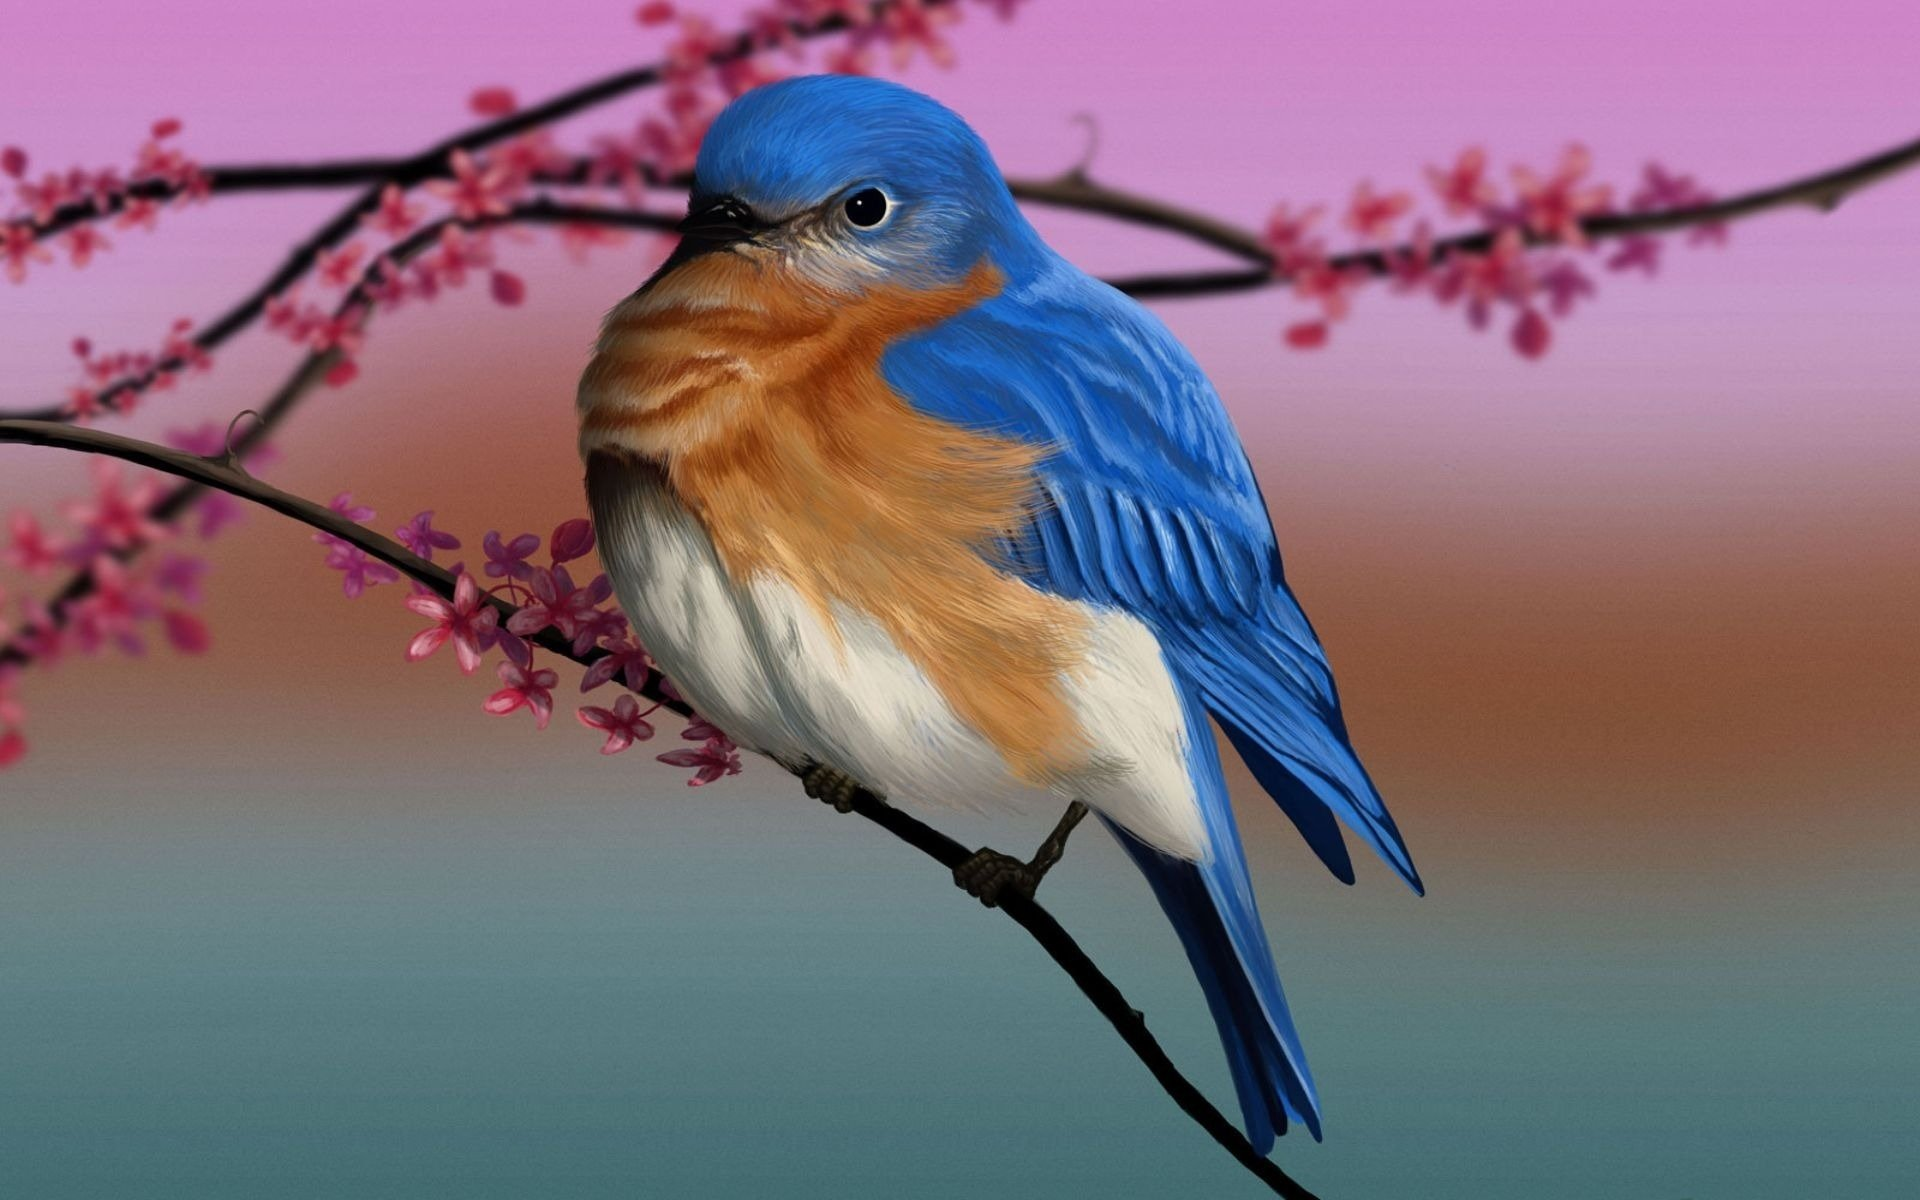 Bird hd wallpaper background image 1920x1200 id 397641 wallpaper abyss - Pheasant wallpaper for walls ...